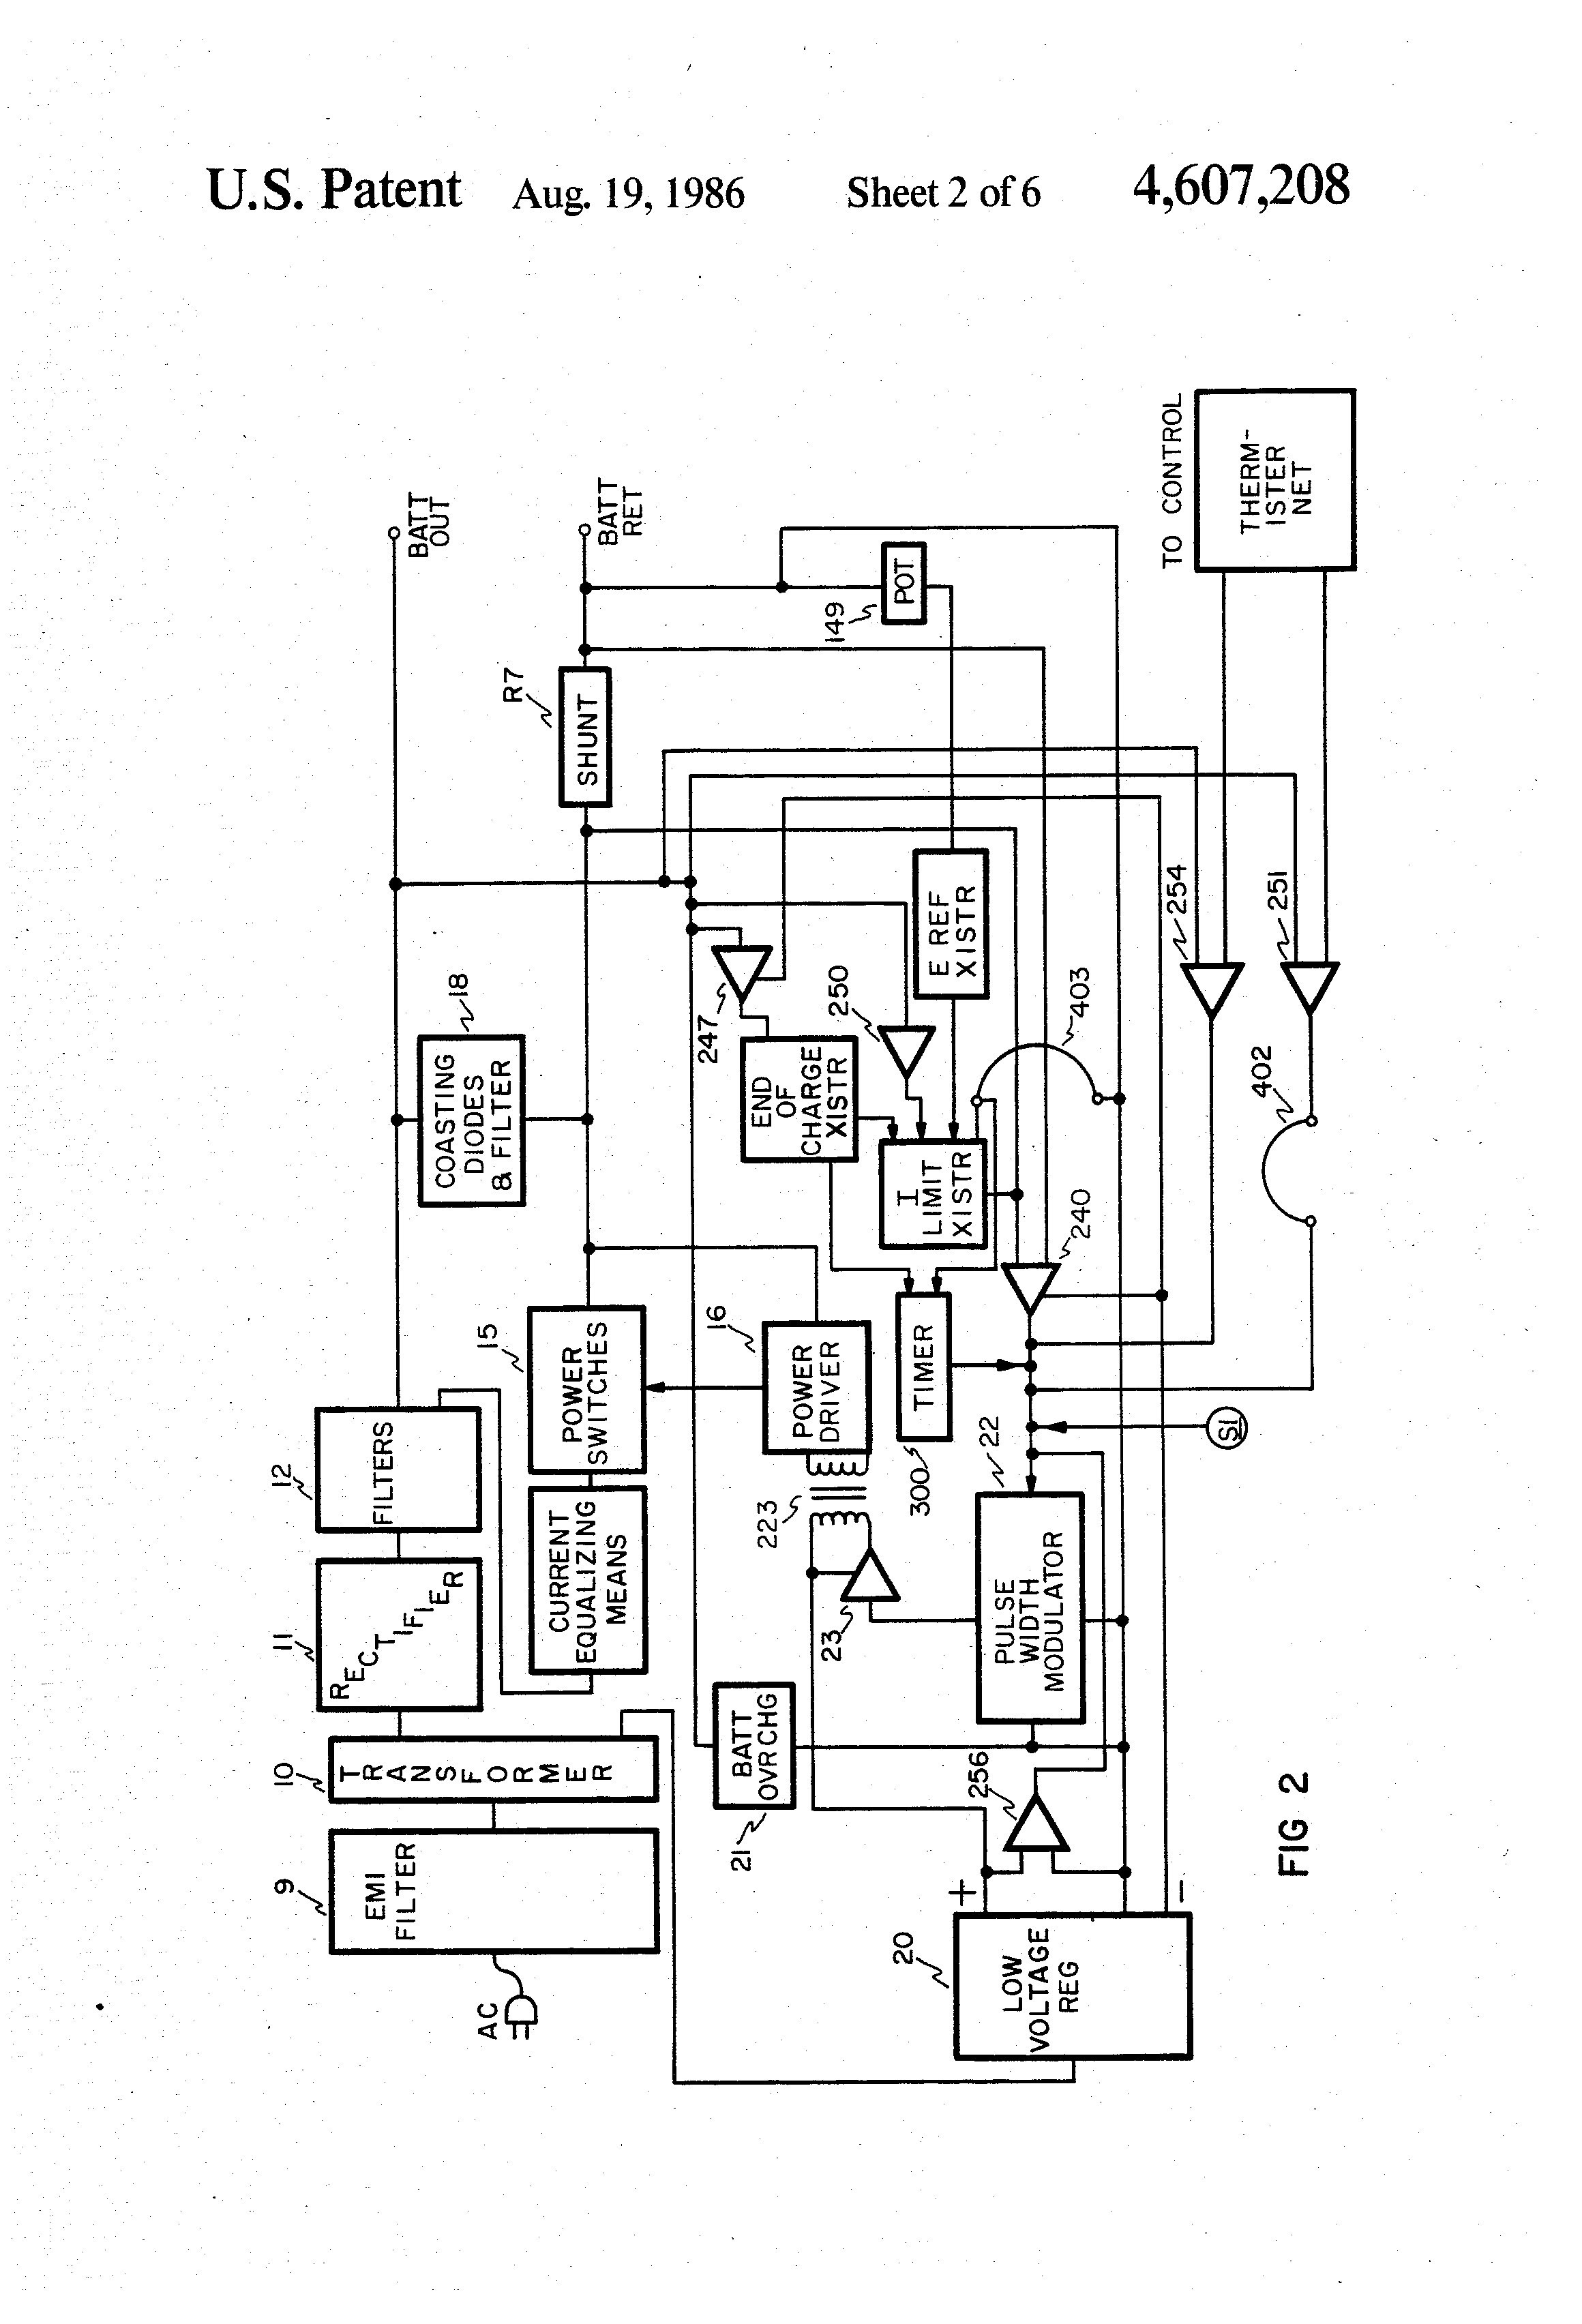 Diagram Delta Q Charger Wiring Diagram Full Version Hd Quality Wiring Diagram Gfsiguidebook Hoteldongwe It